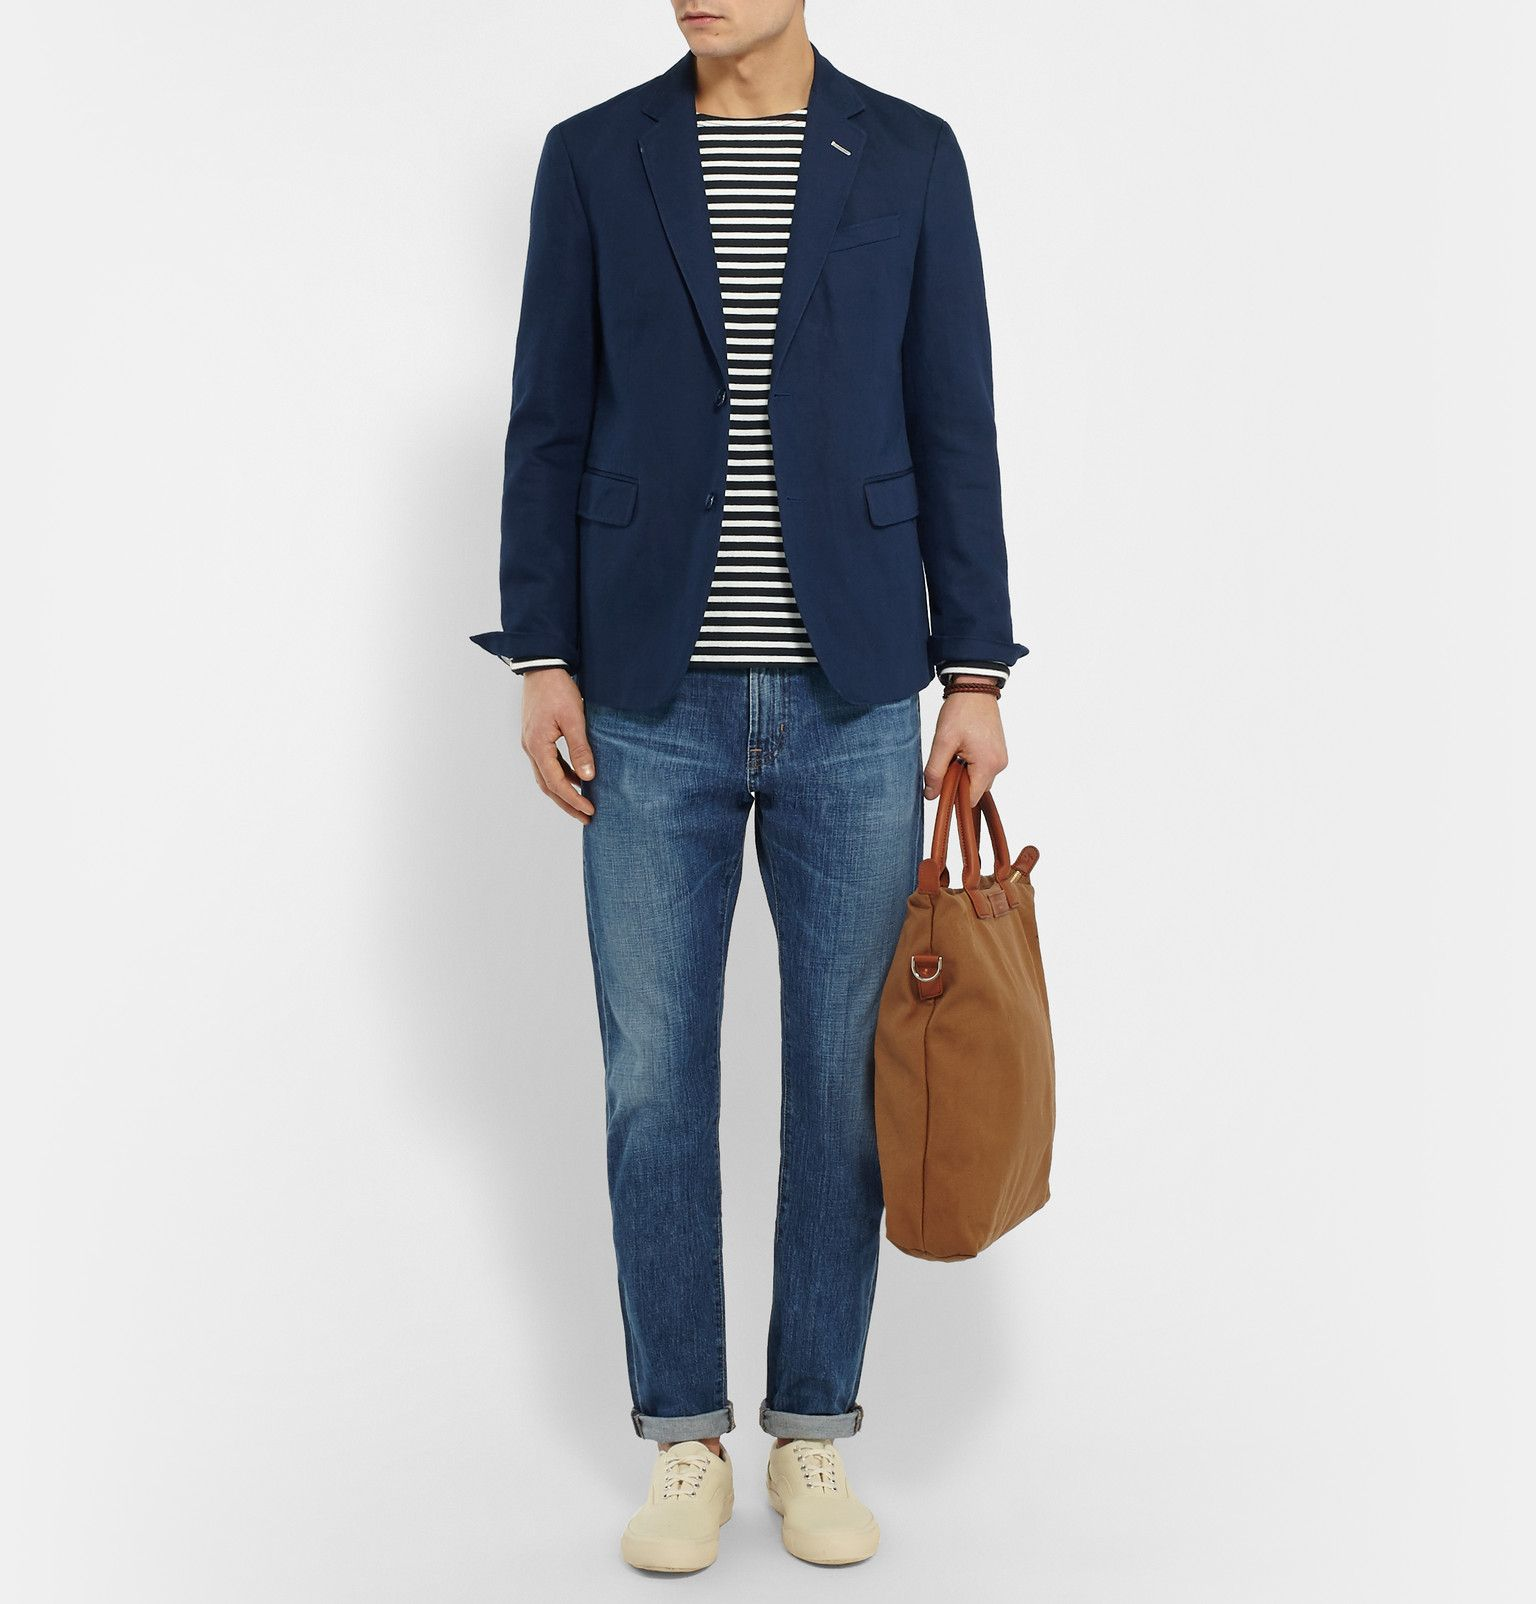 0b3da9da4 Gant Rugger - Navy Cotton and Linen-Blend Blazer | Cotton Linen ...